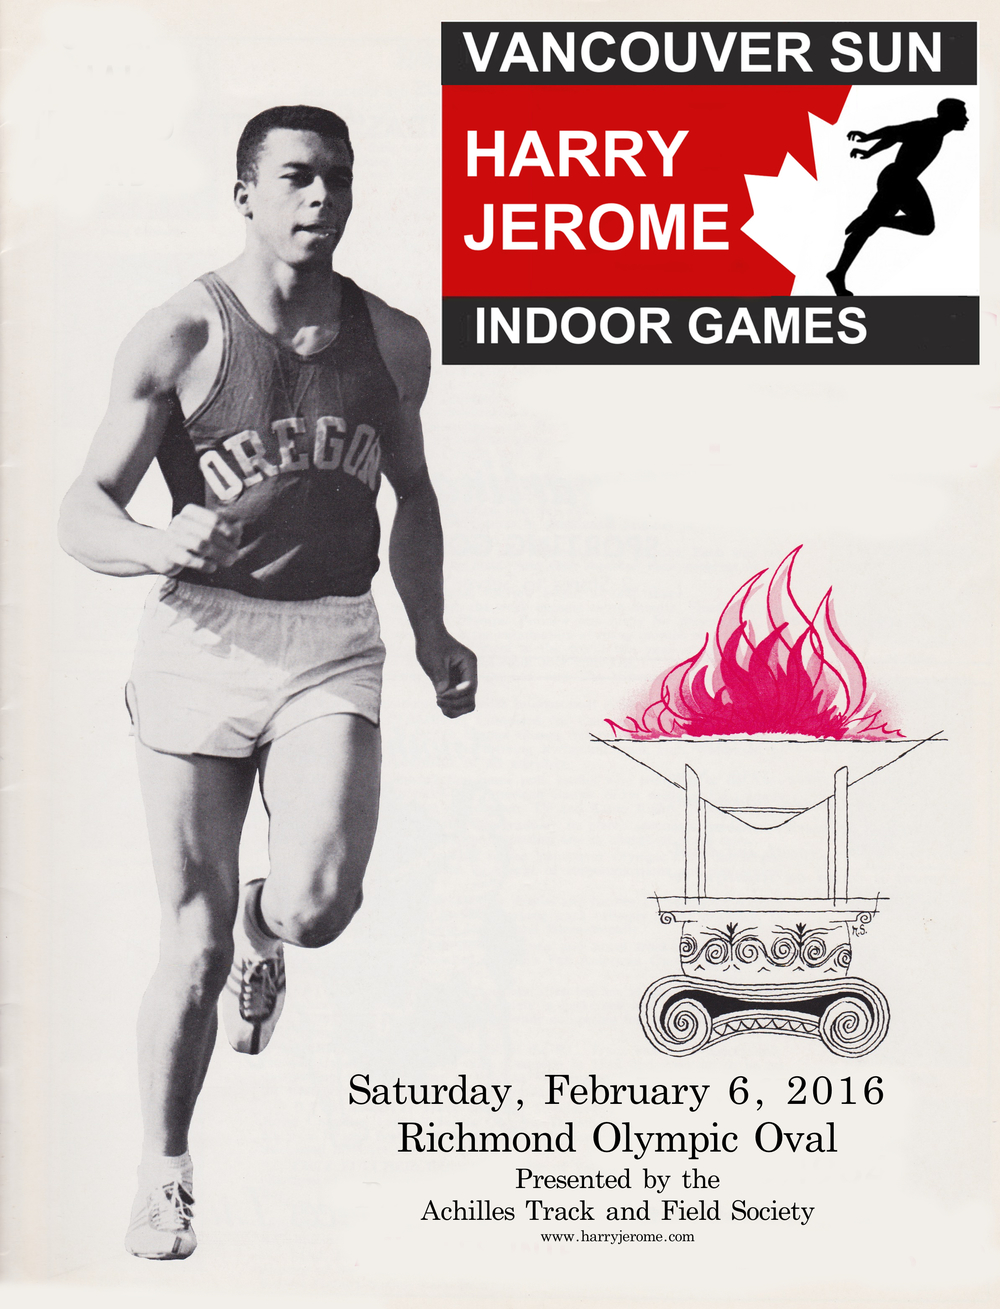 Almost 400 athletes will compete in this 6th edition of the Vancouver Sun Jerome Indoor Games. Events get underway at 9:45 at the Richmond Olympic Oval   Meet program is available at www.harryjerome.com under the Jerome Indoor Games heading.